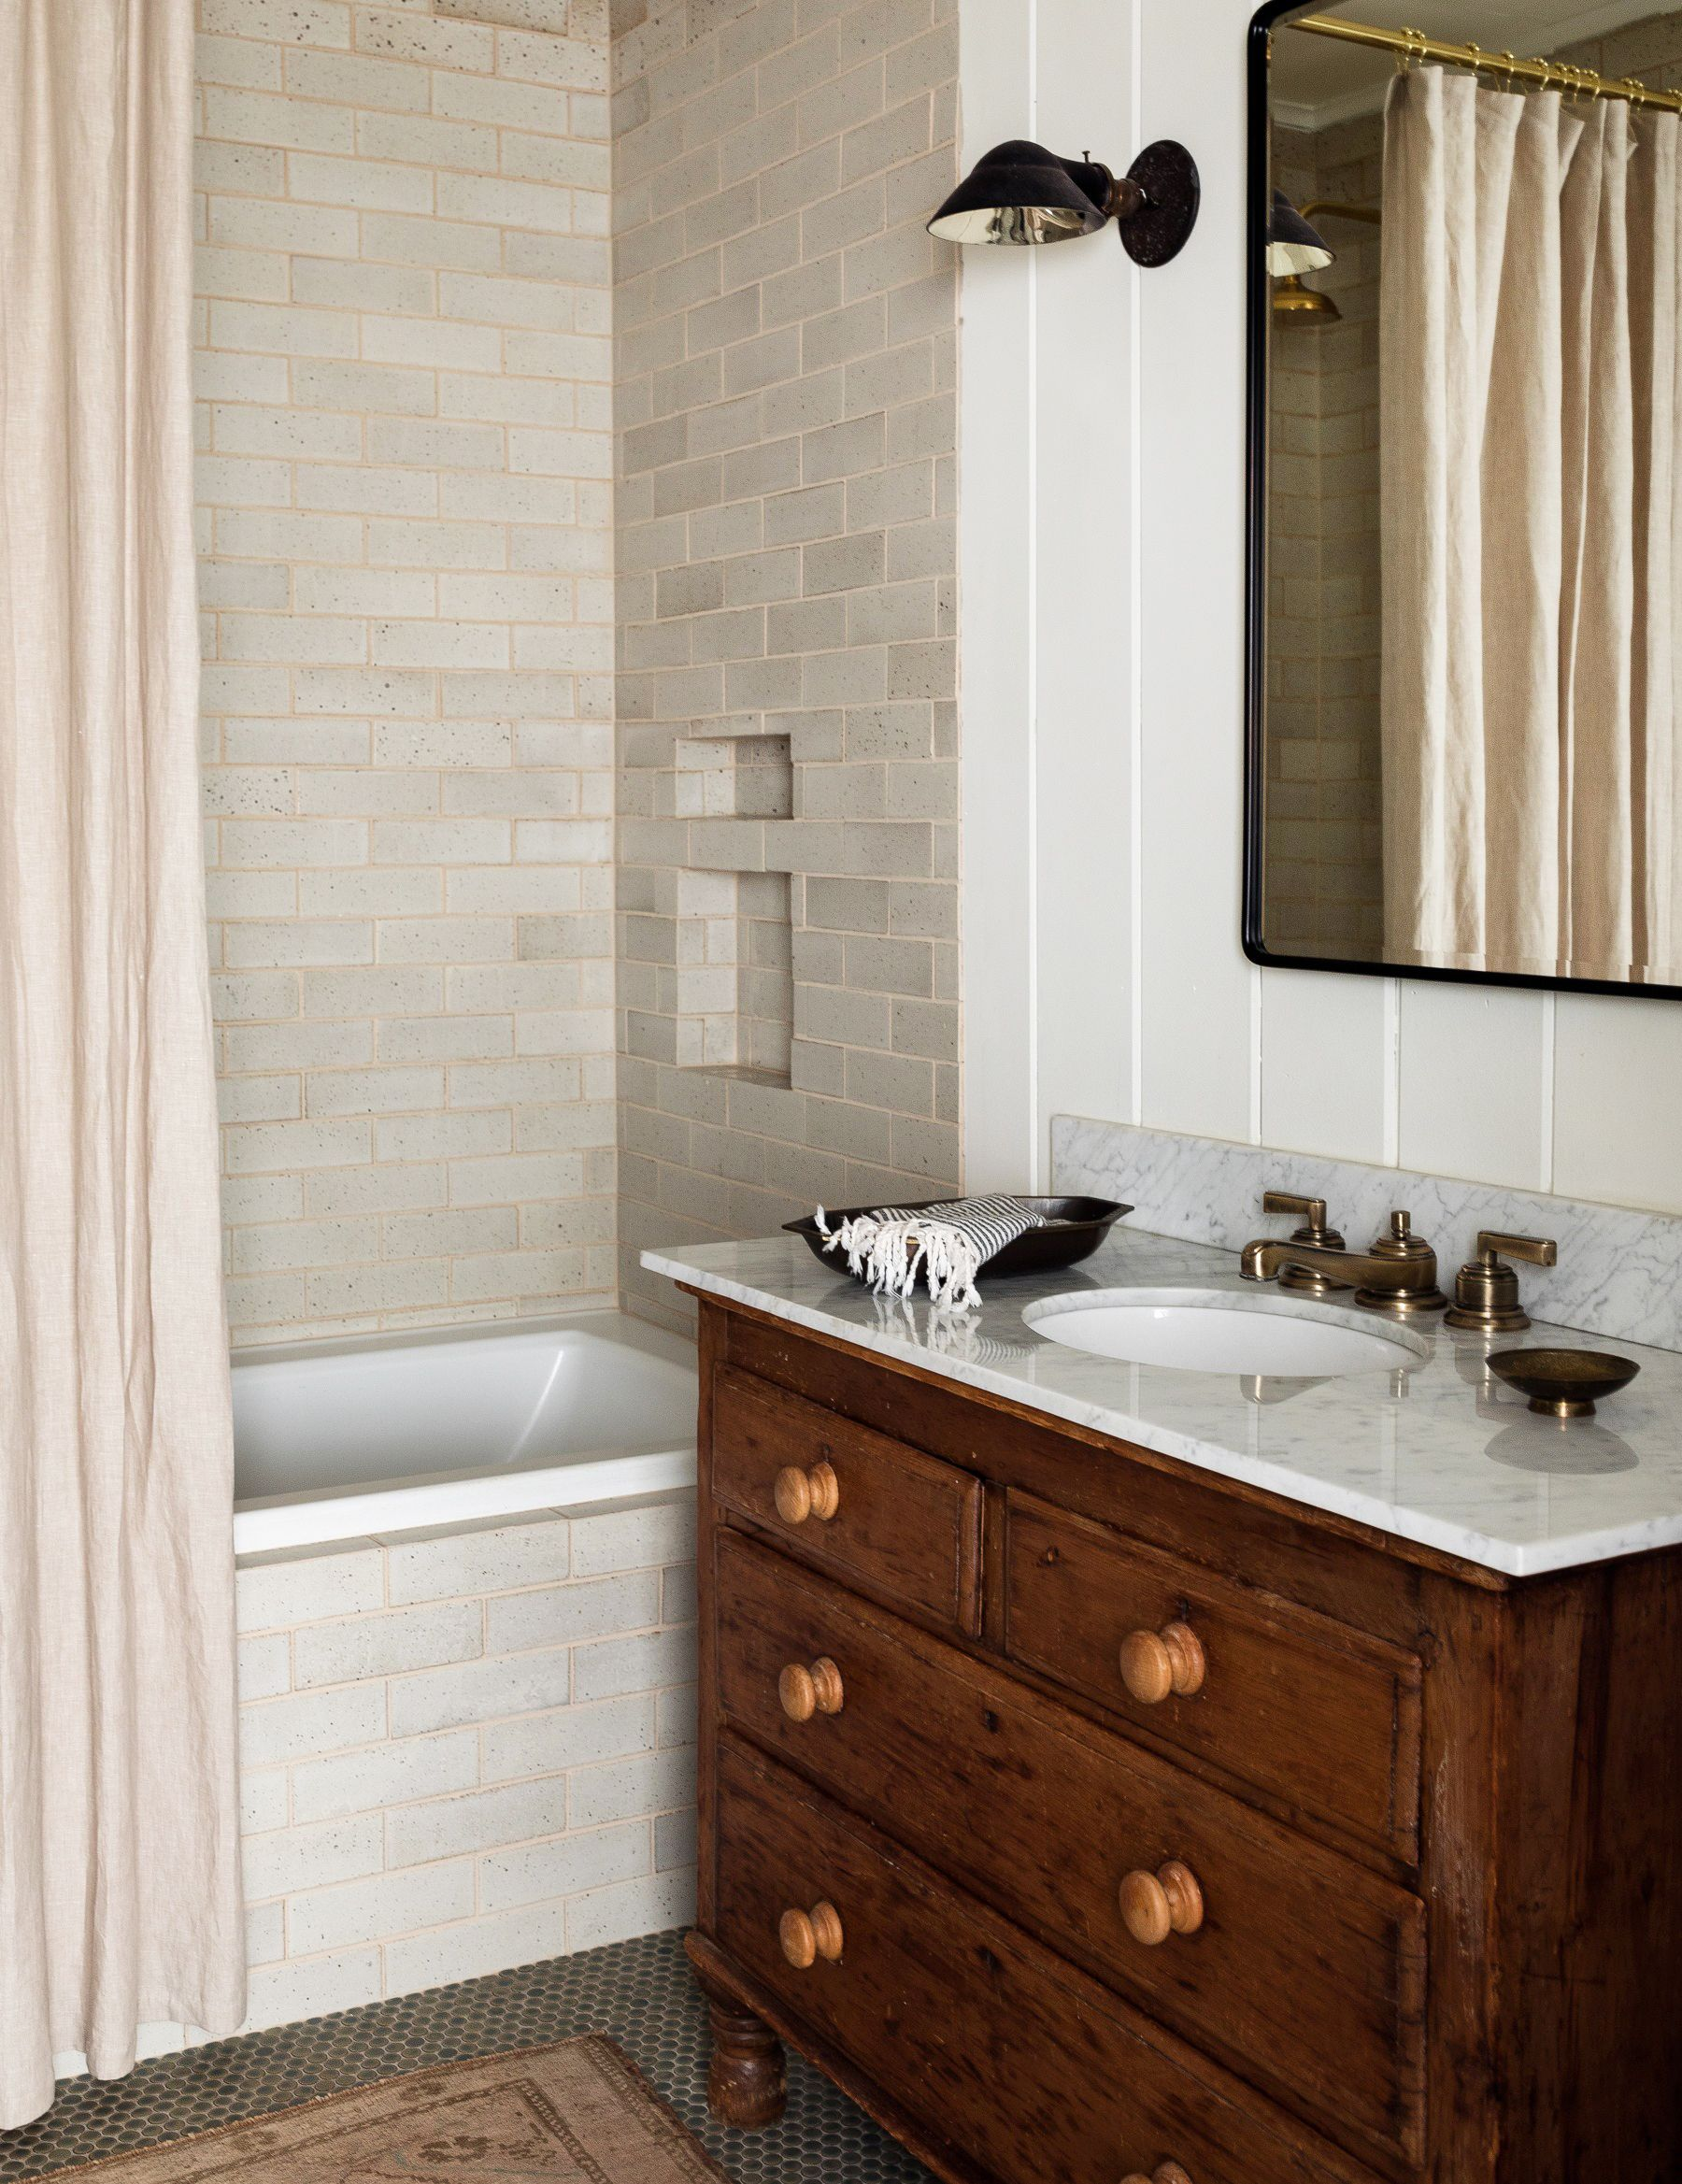 15 Best Subway Tile Bathroom Designs In 2020 Subway Tile